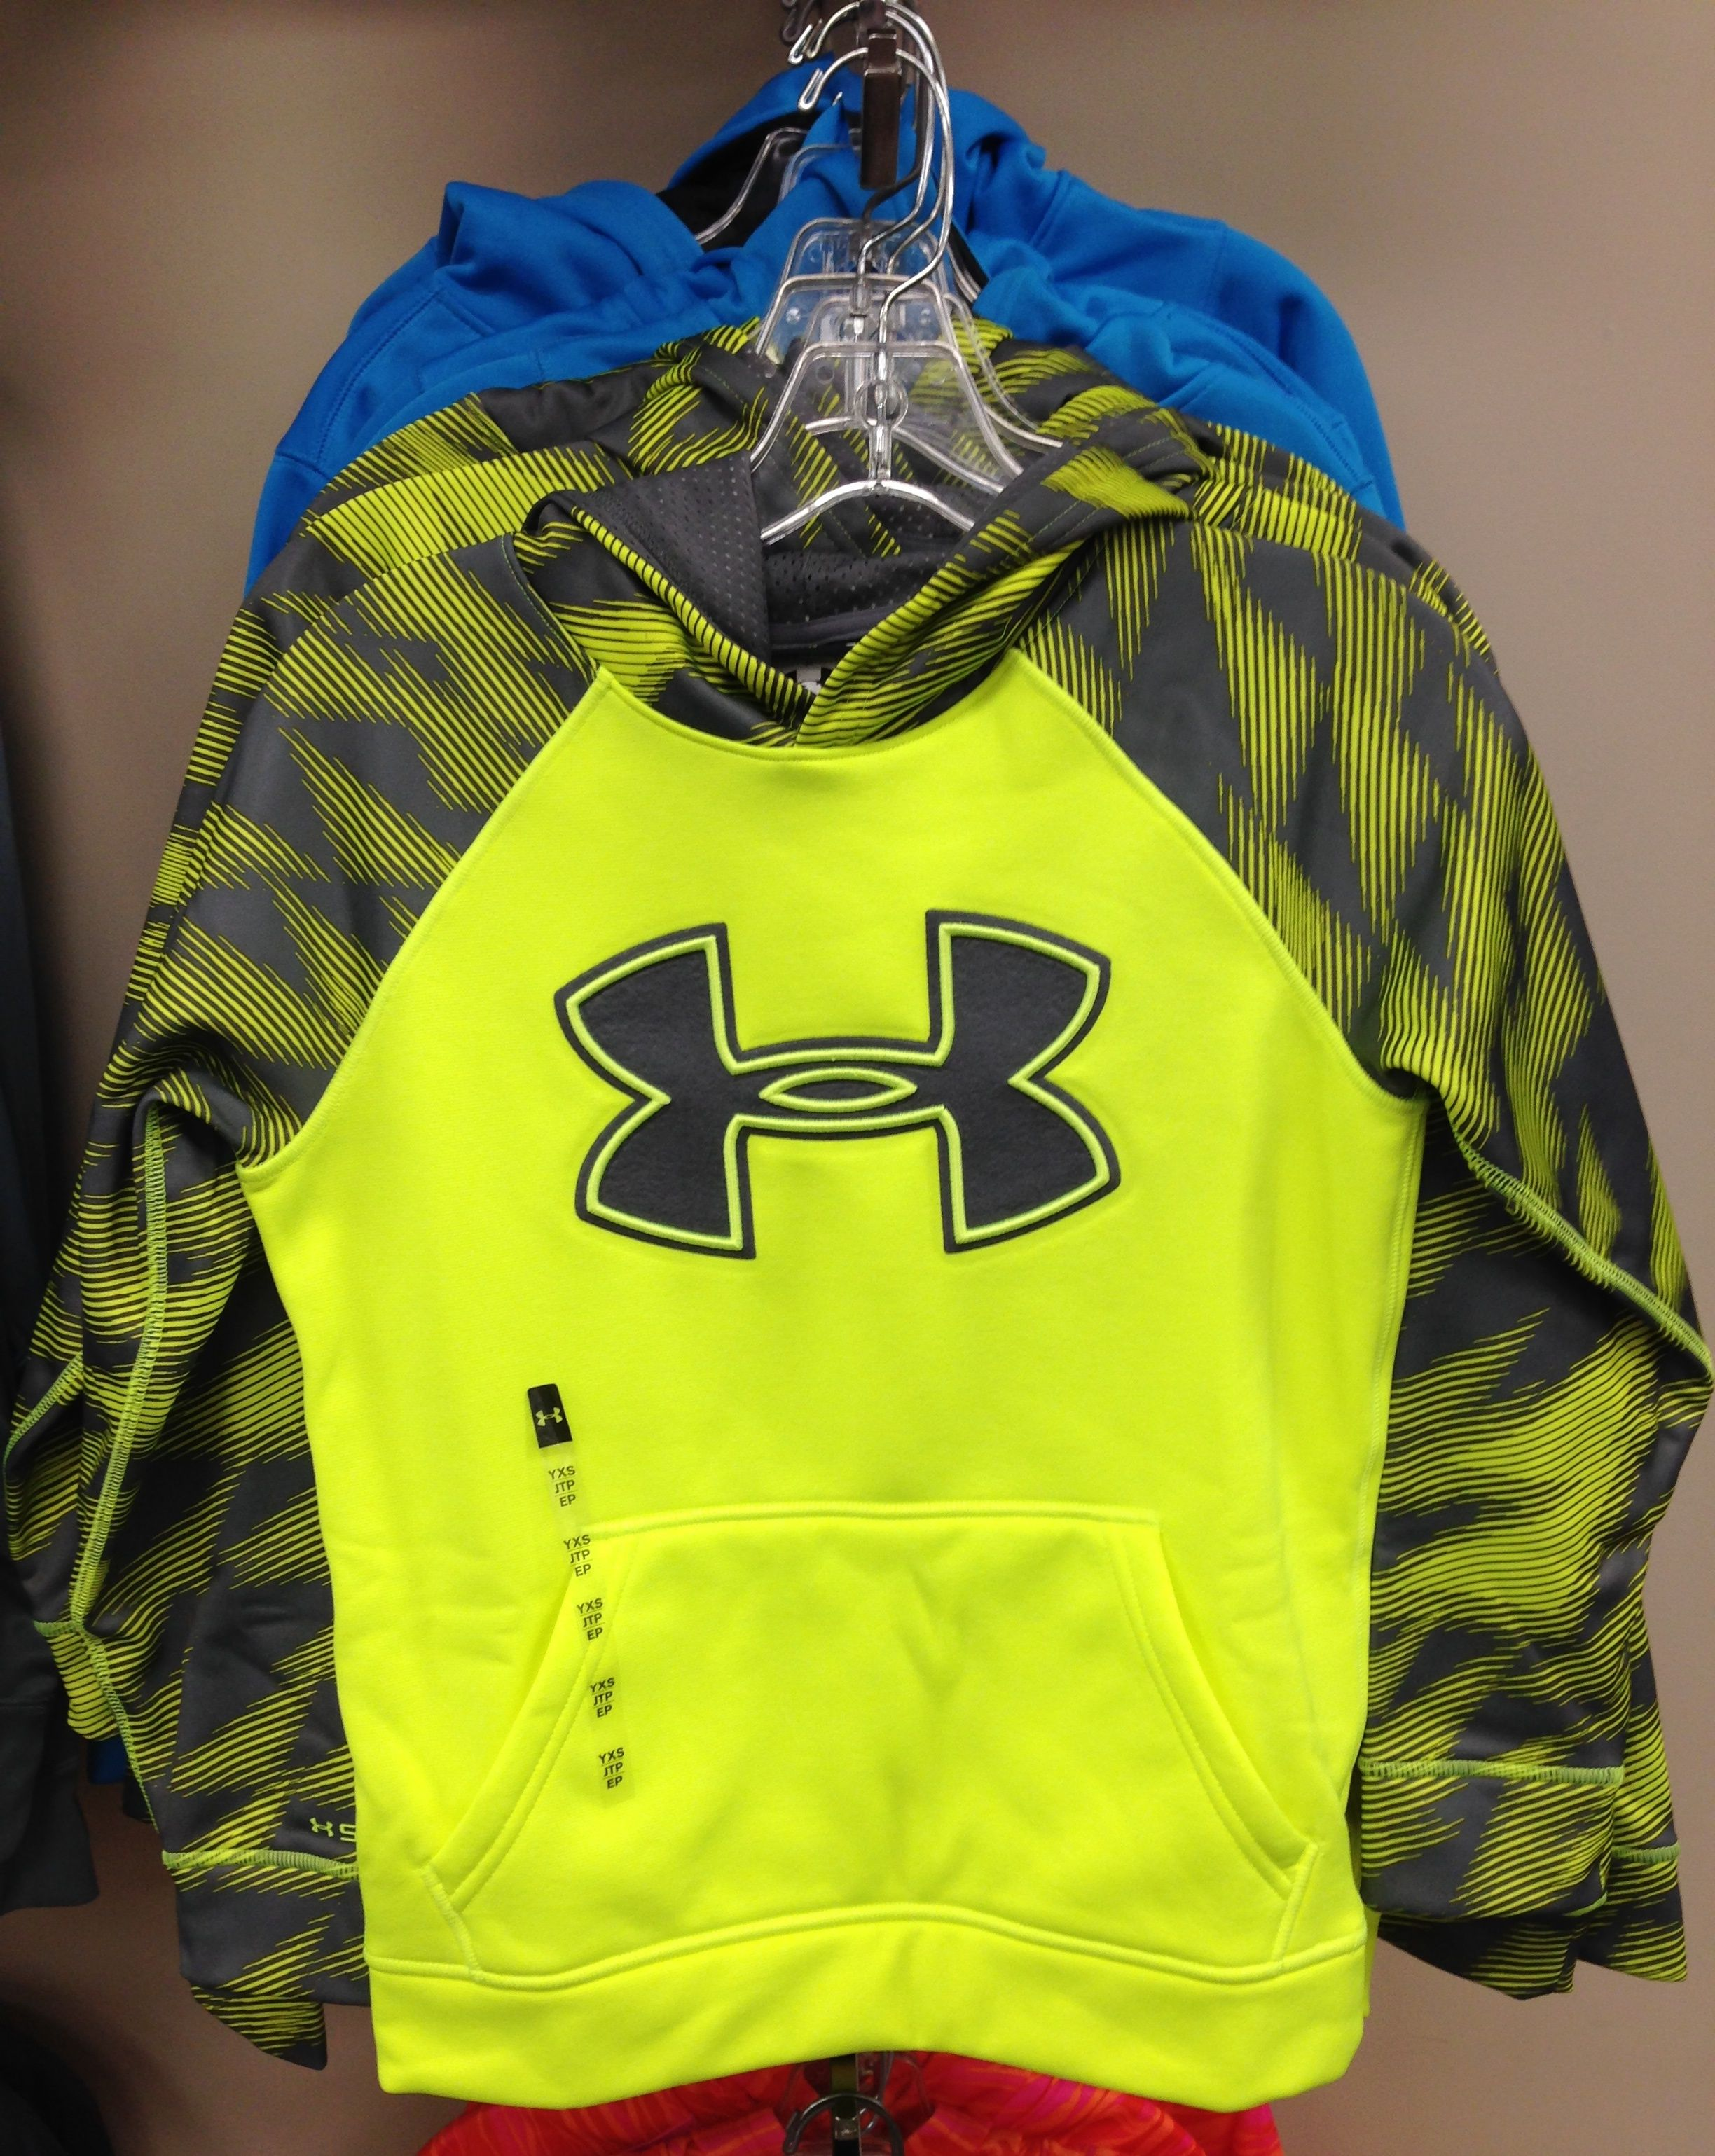 Youth Under Armour Sweatshirt Neon Yellow And Gray Under Armour Sweatshirt Hoodies Clothes [ 3078 x 2448 Pixel ]